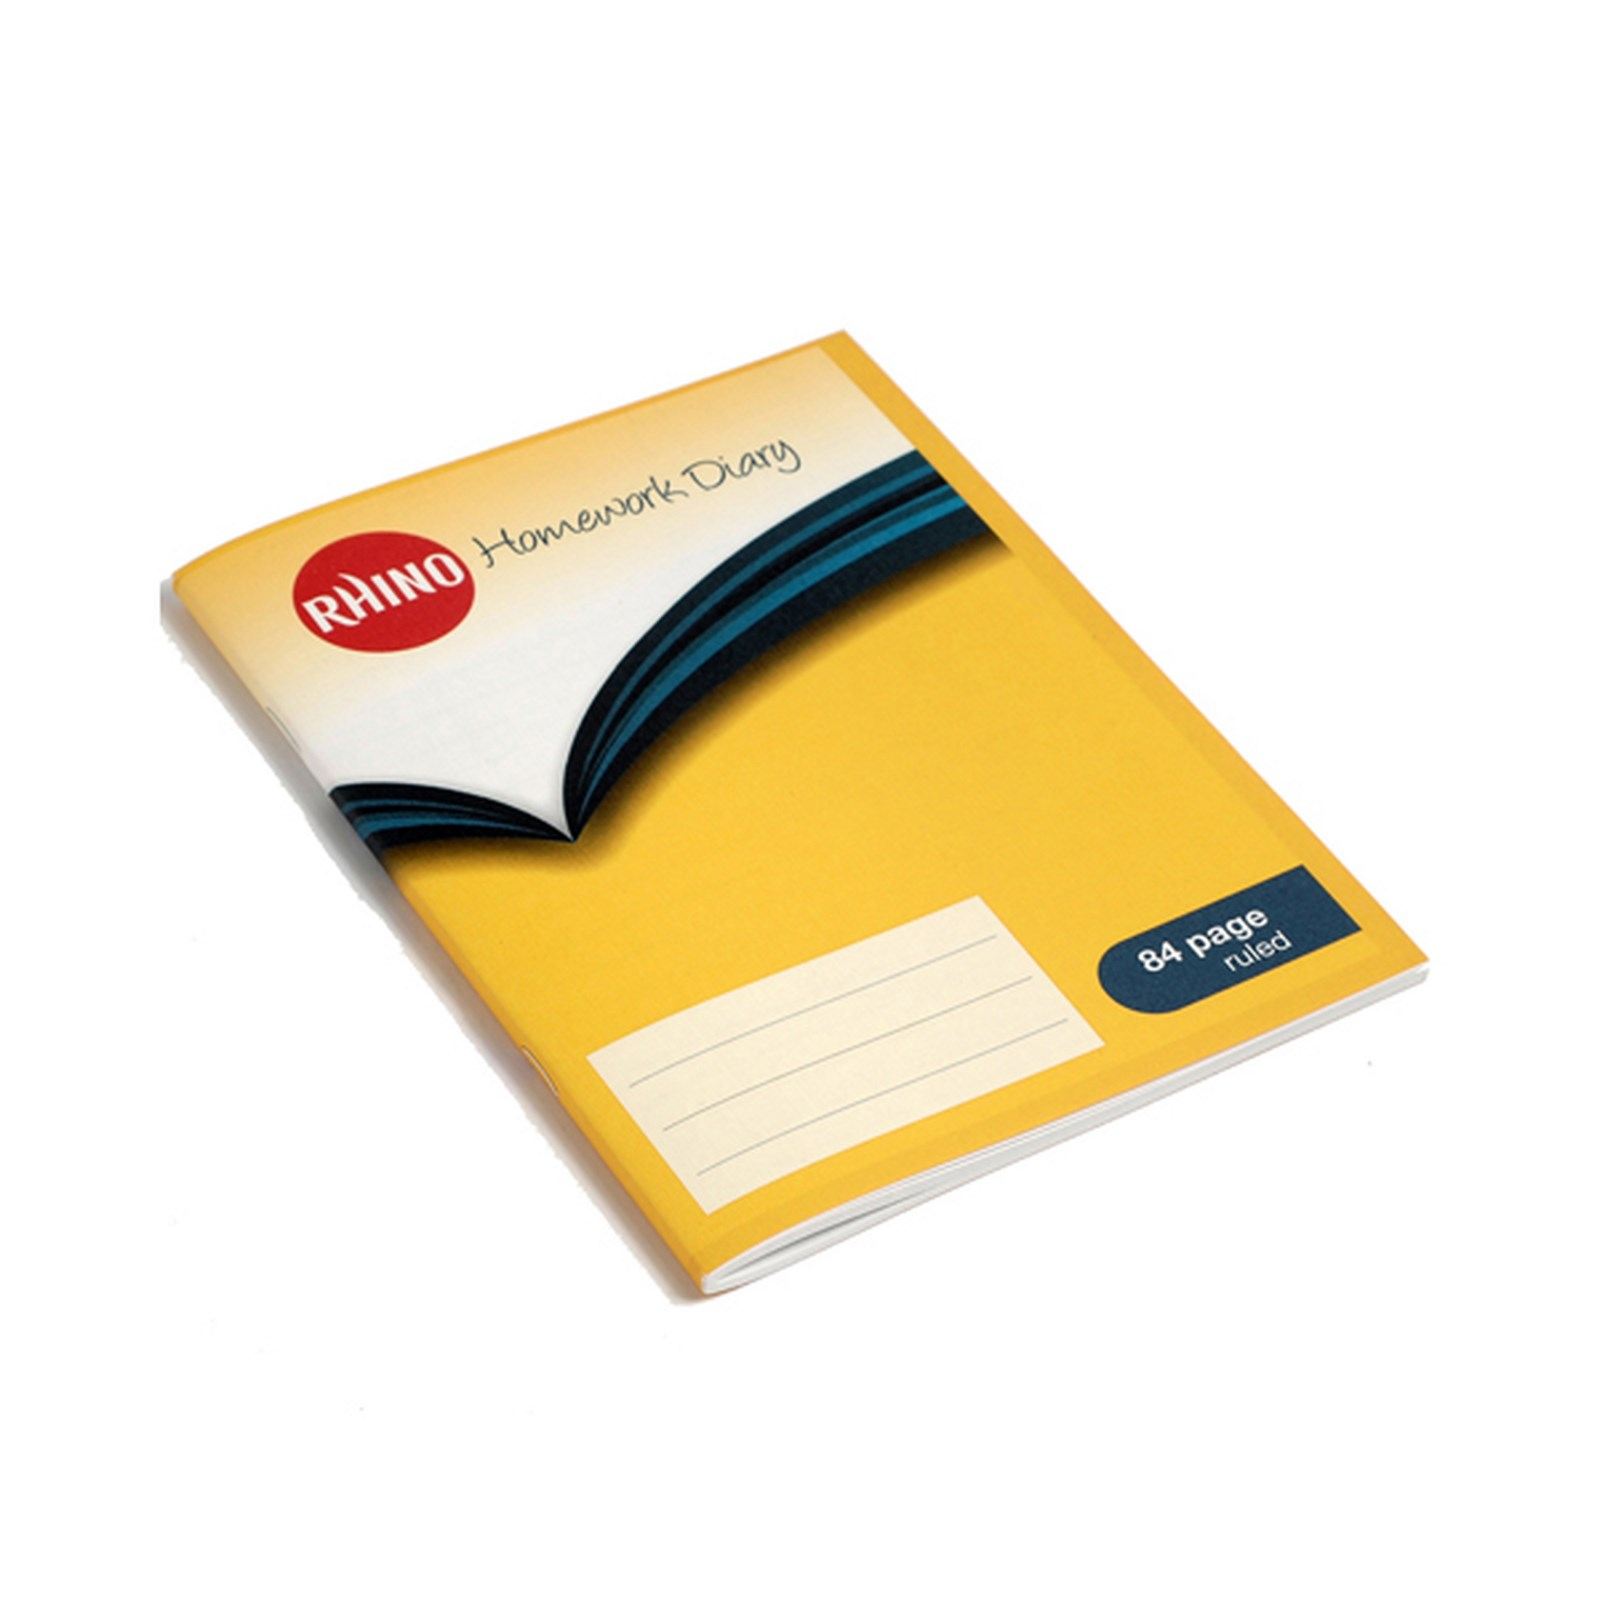 Homework Diary, 5 Day, 84 Pages, Yellow Cover - Pack of 100